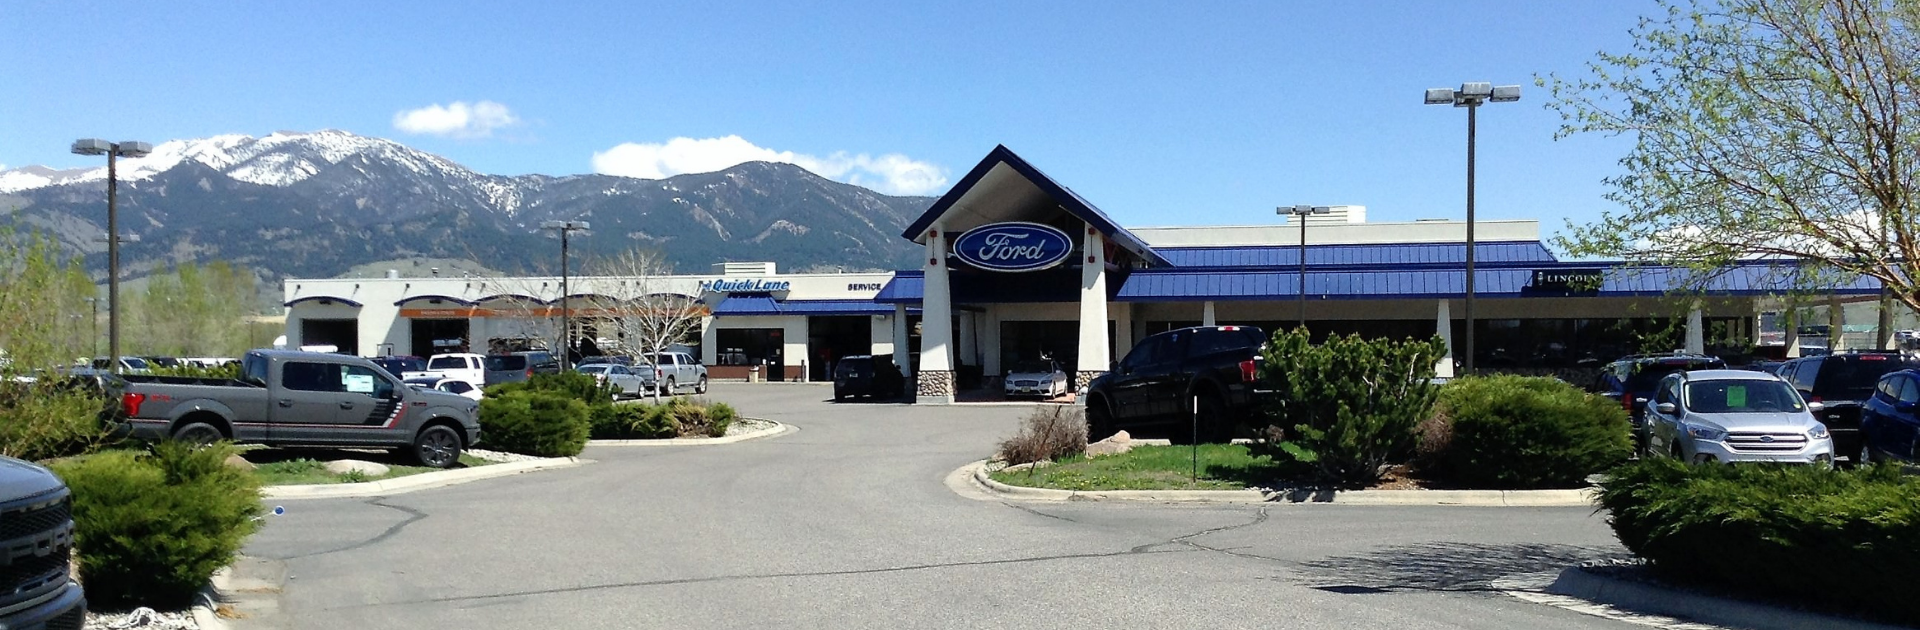 Bozeman Ford Exterior Picture